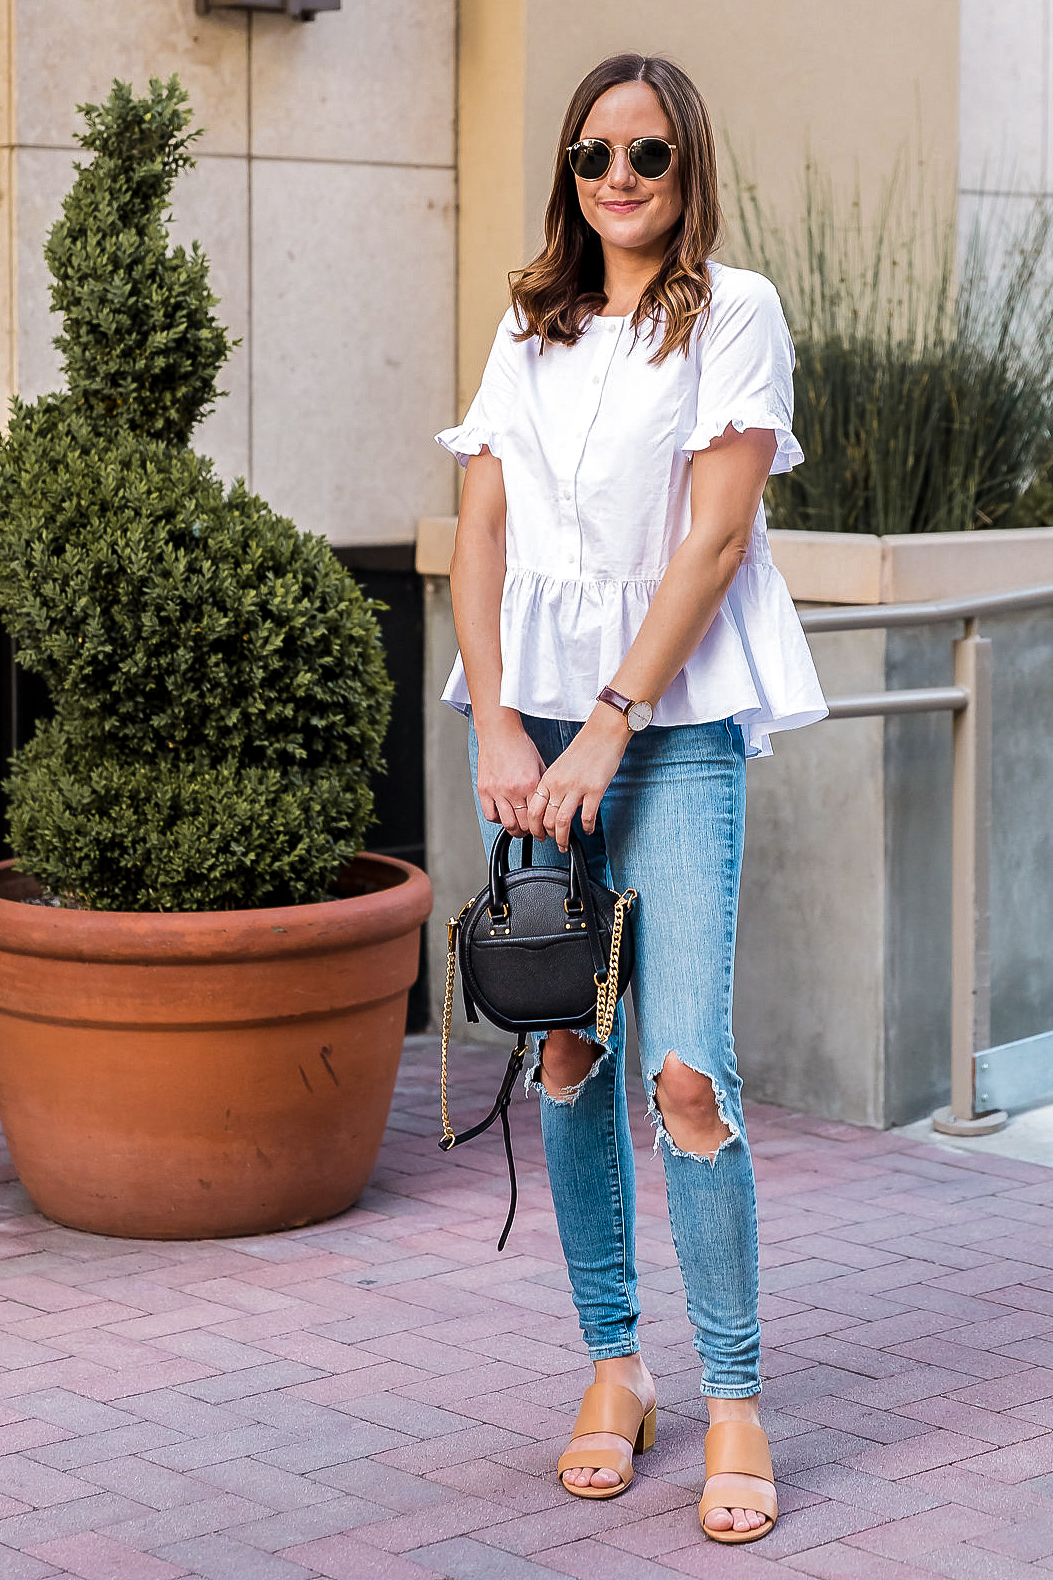 classic style white top and jeans